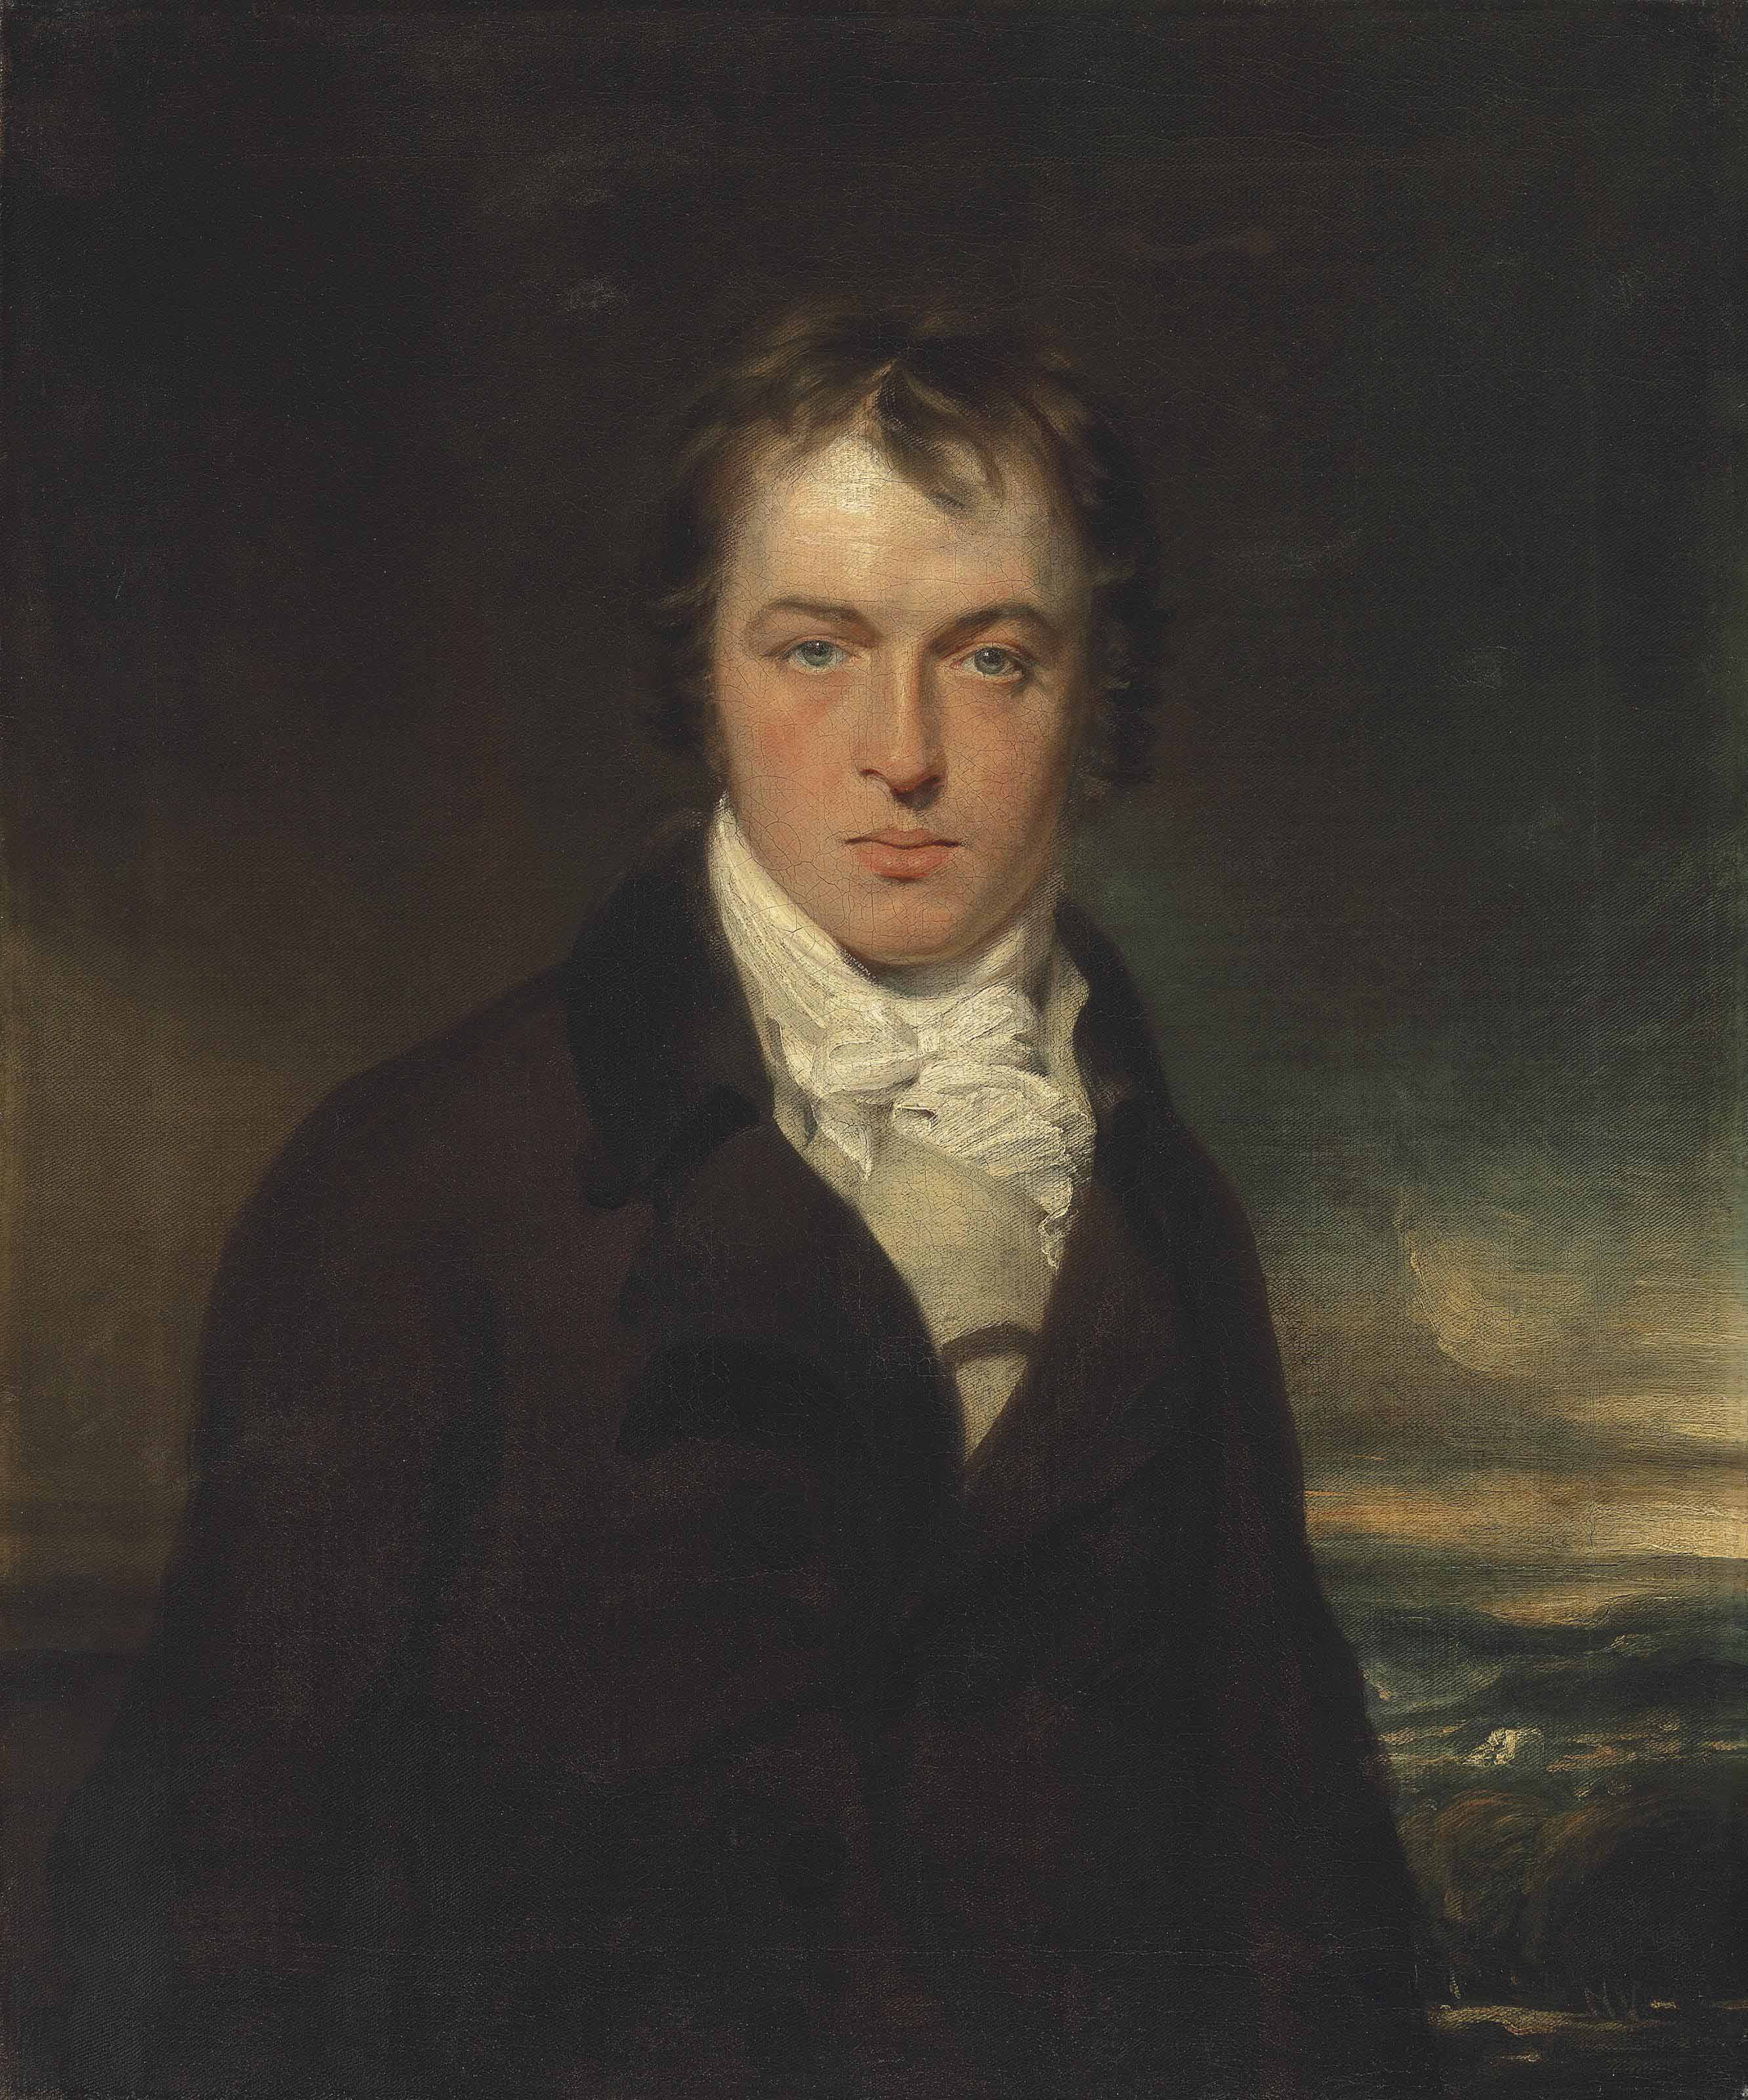 Portrait of a gentleman, half-length, in a dark coat and cream waistcoat, in a landscape